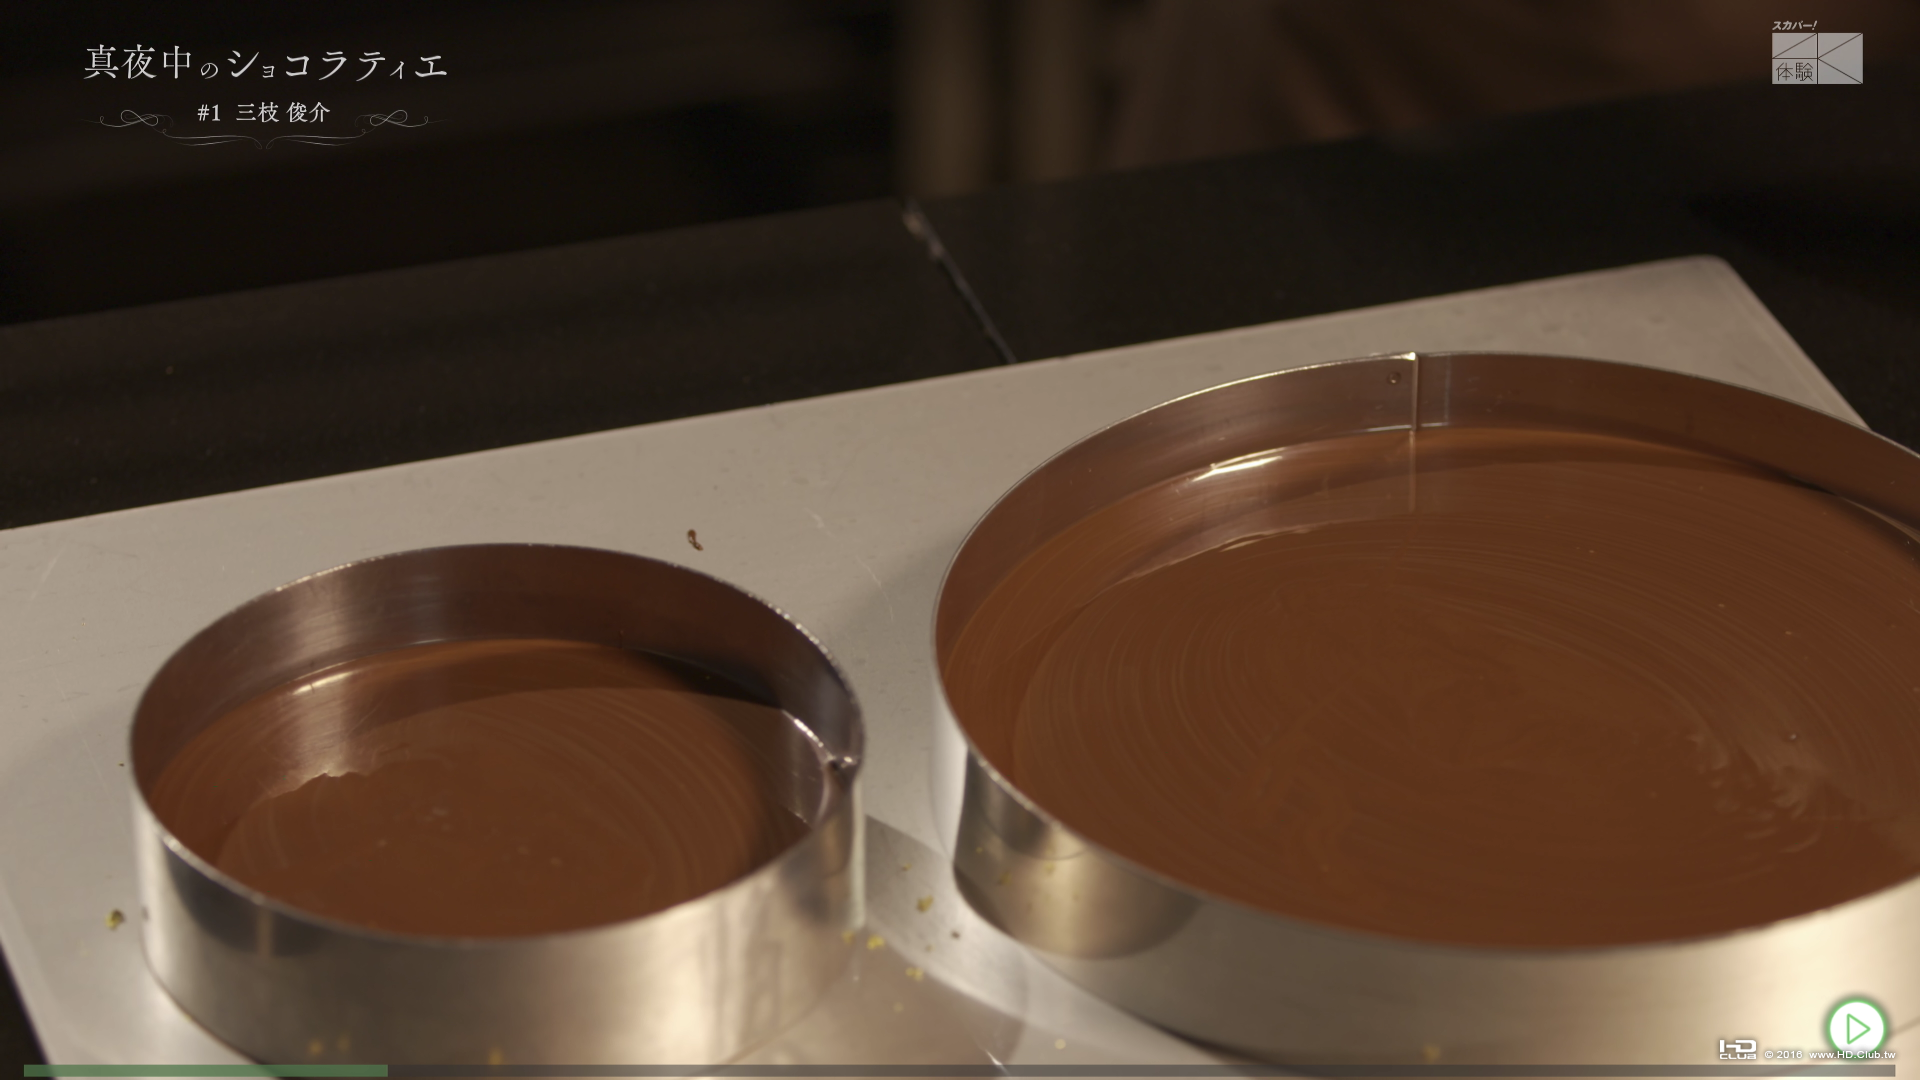 Screenshot_2016-10-12-12-21-05.png